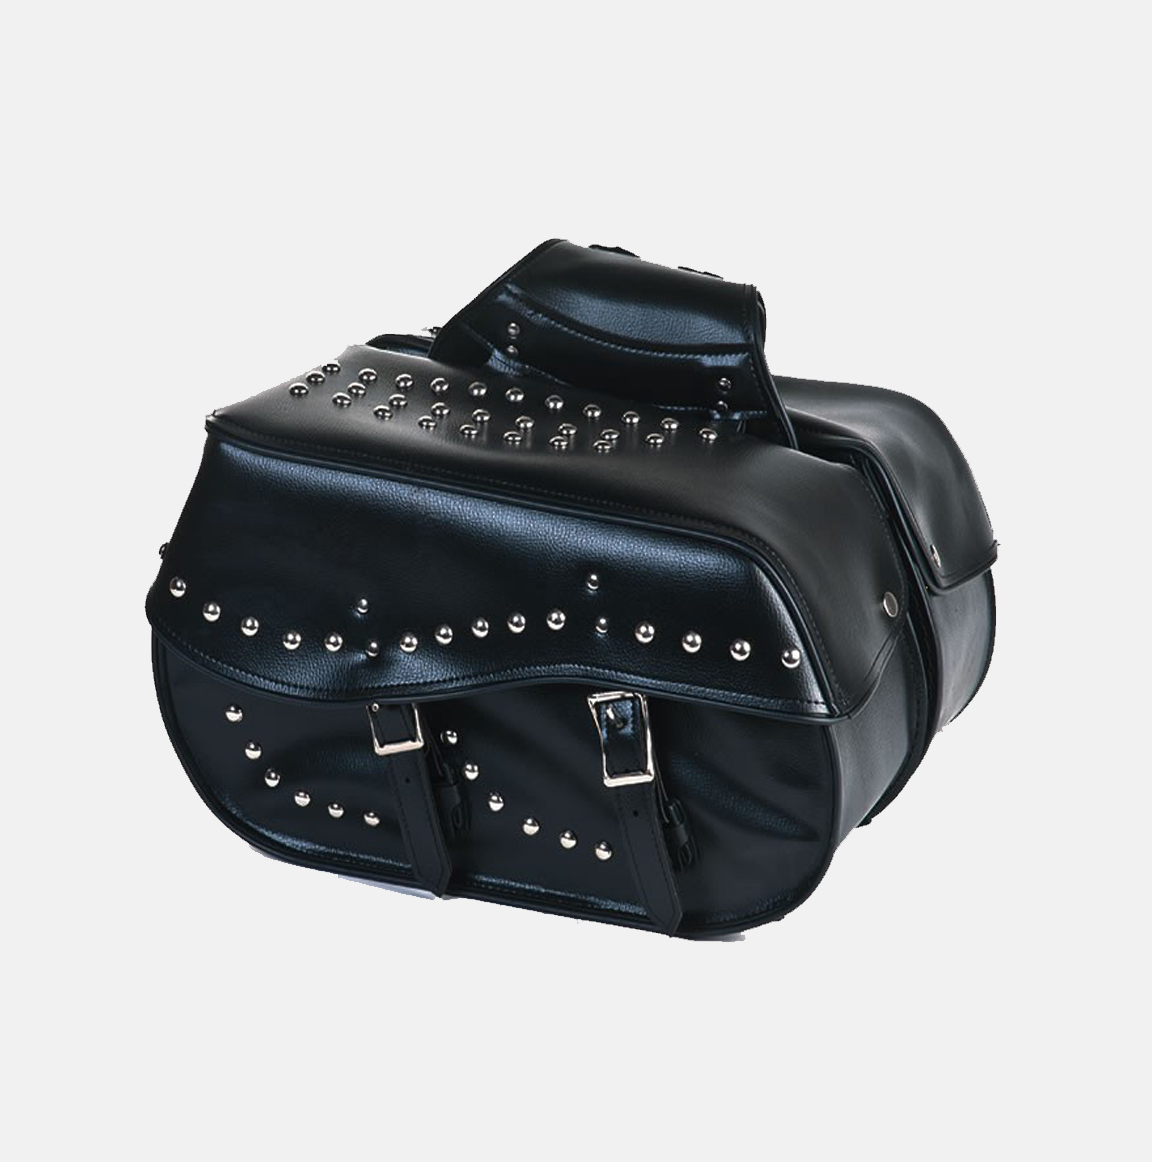 Water proof two piece pvc saddlebag bikers gear online usa for Motor cycle saddle bags